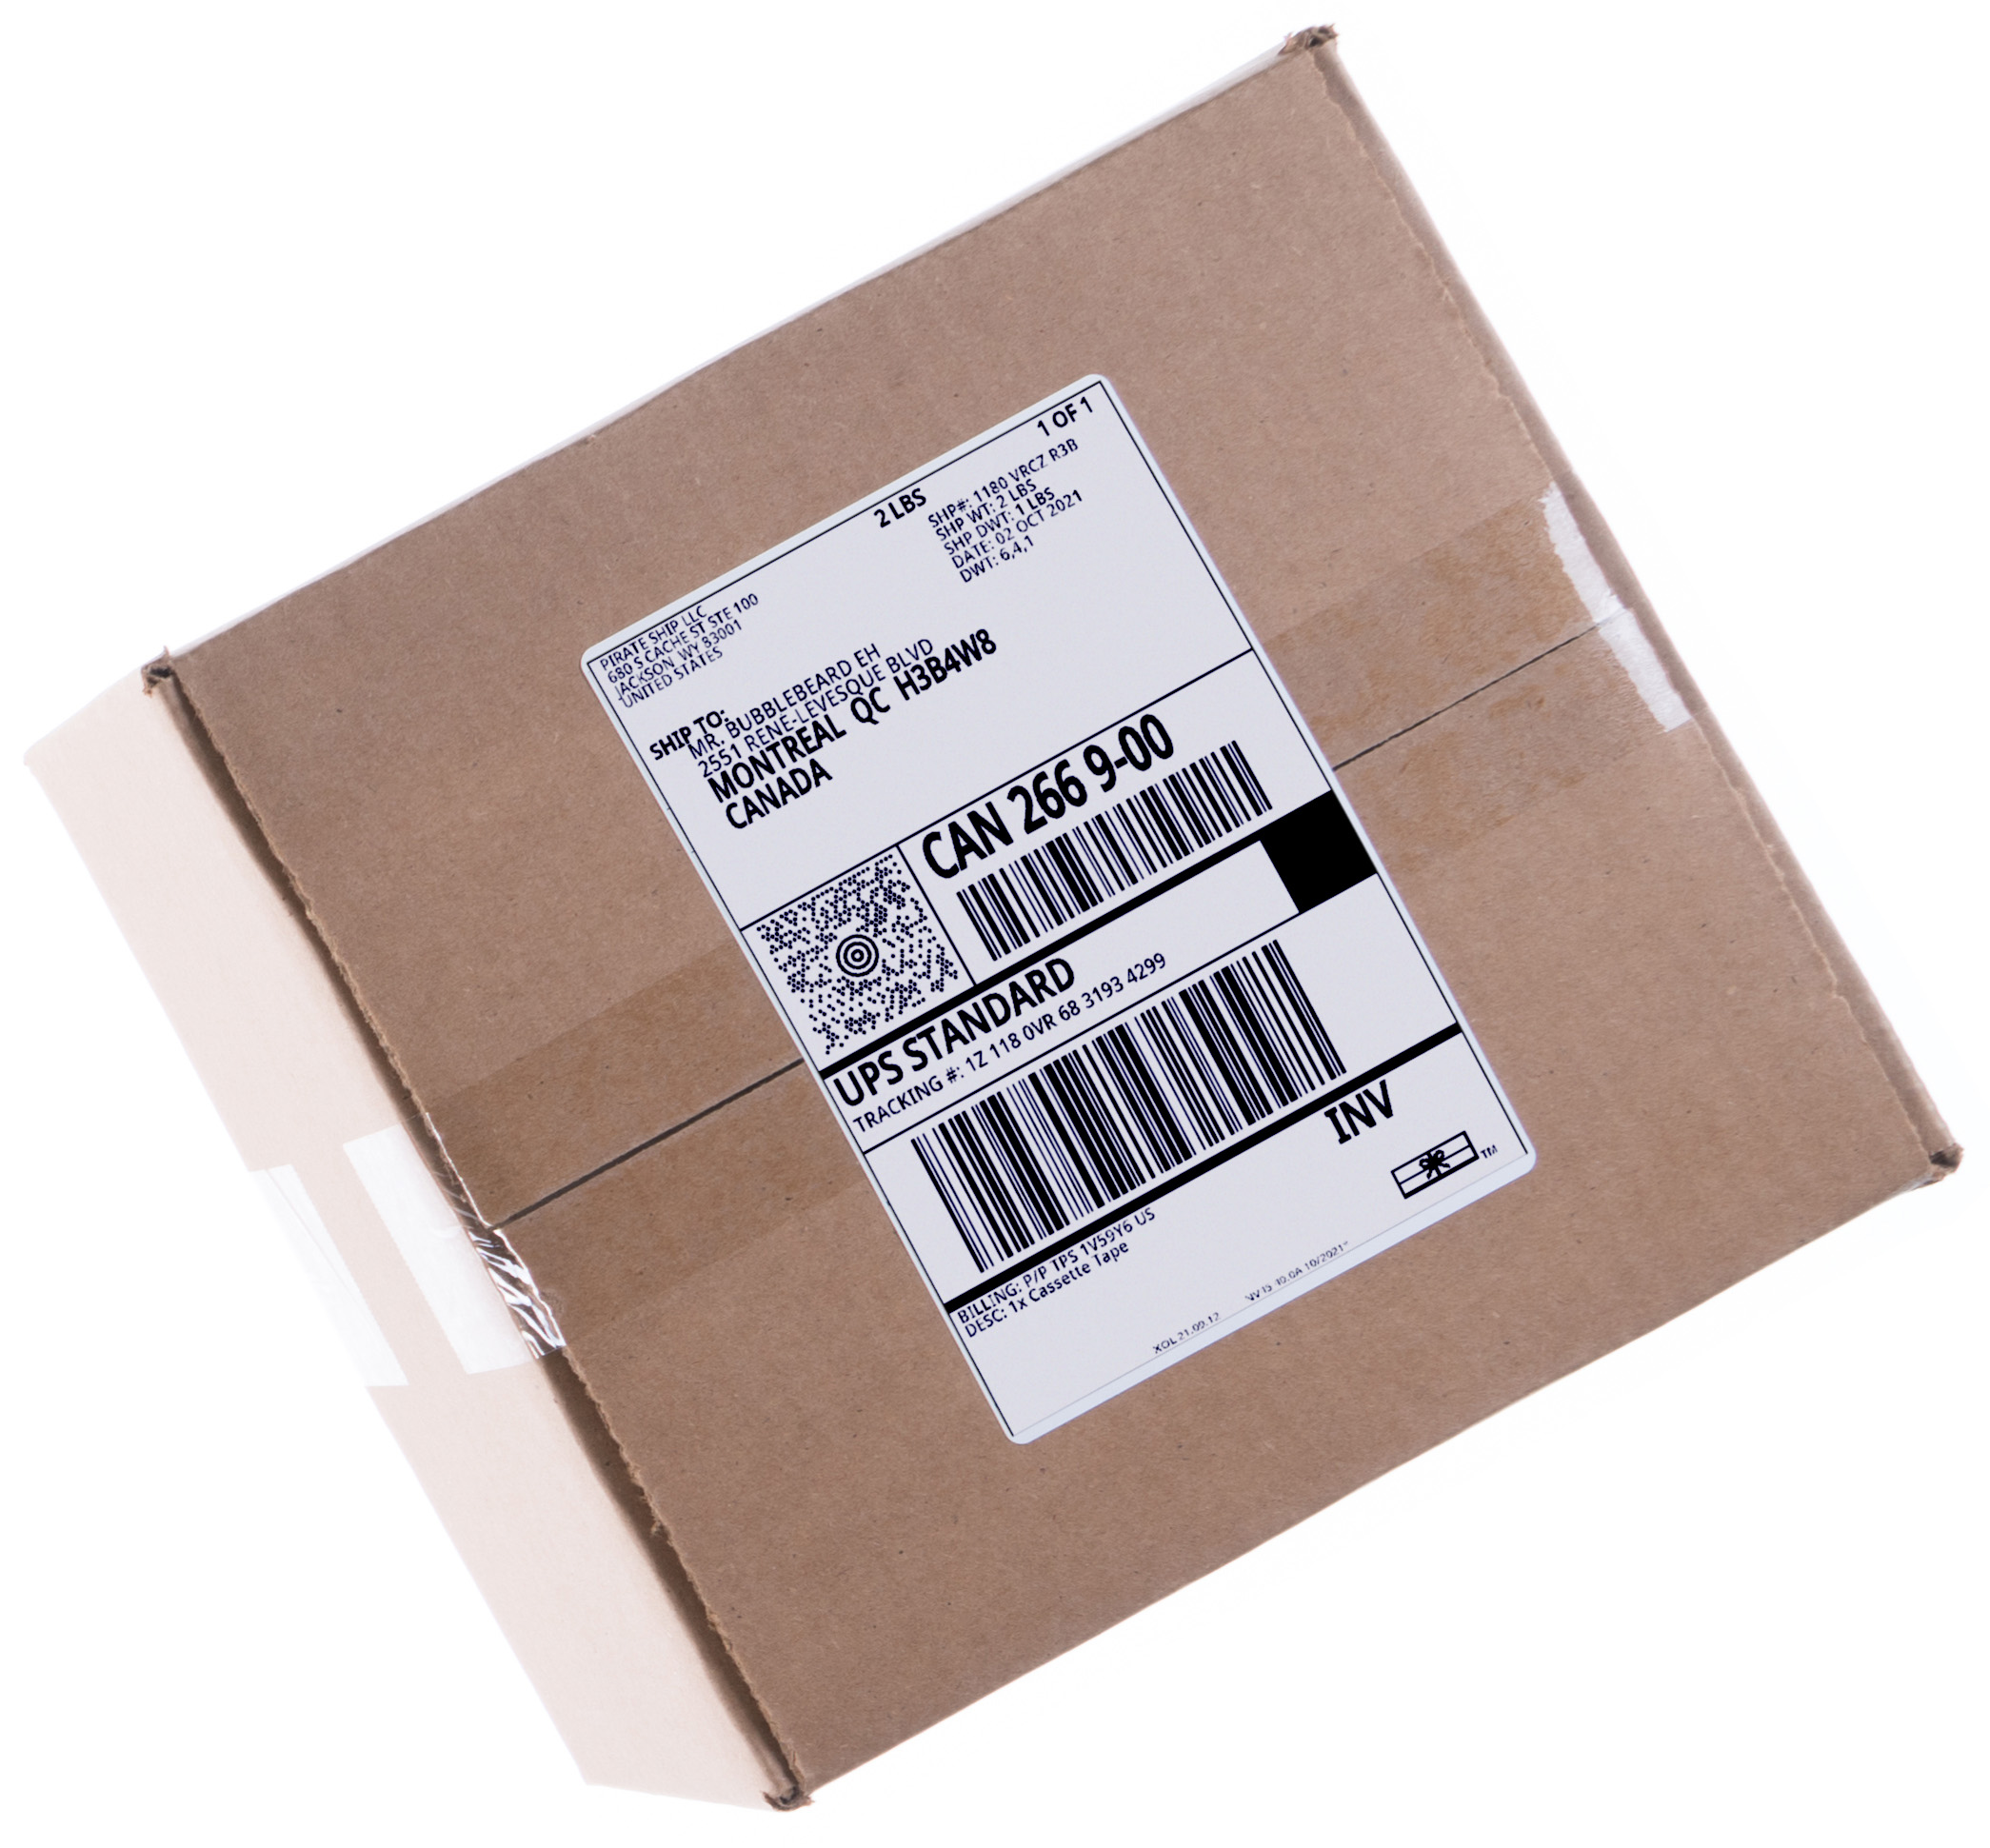 UPS Standard shipping rate label on a box